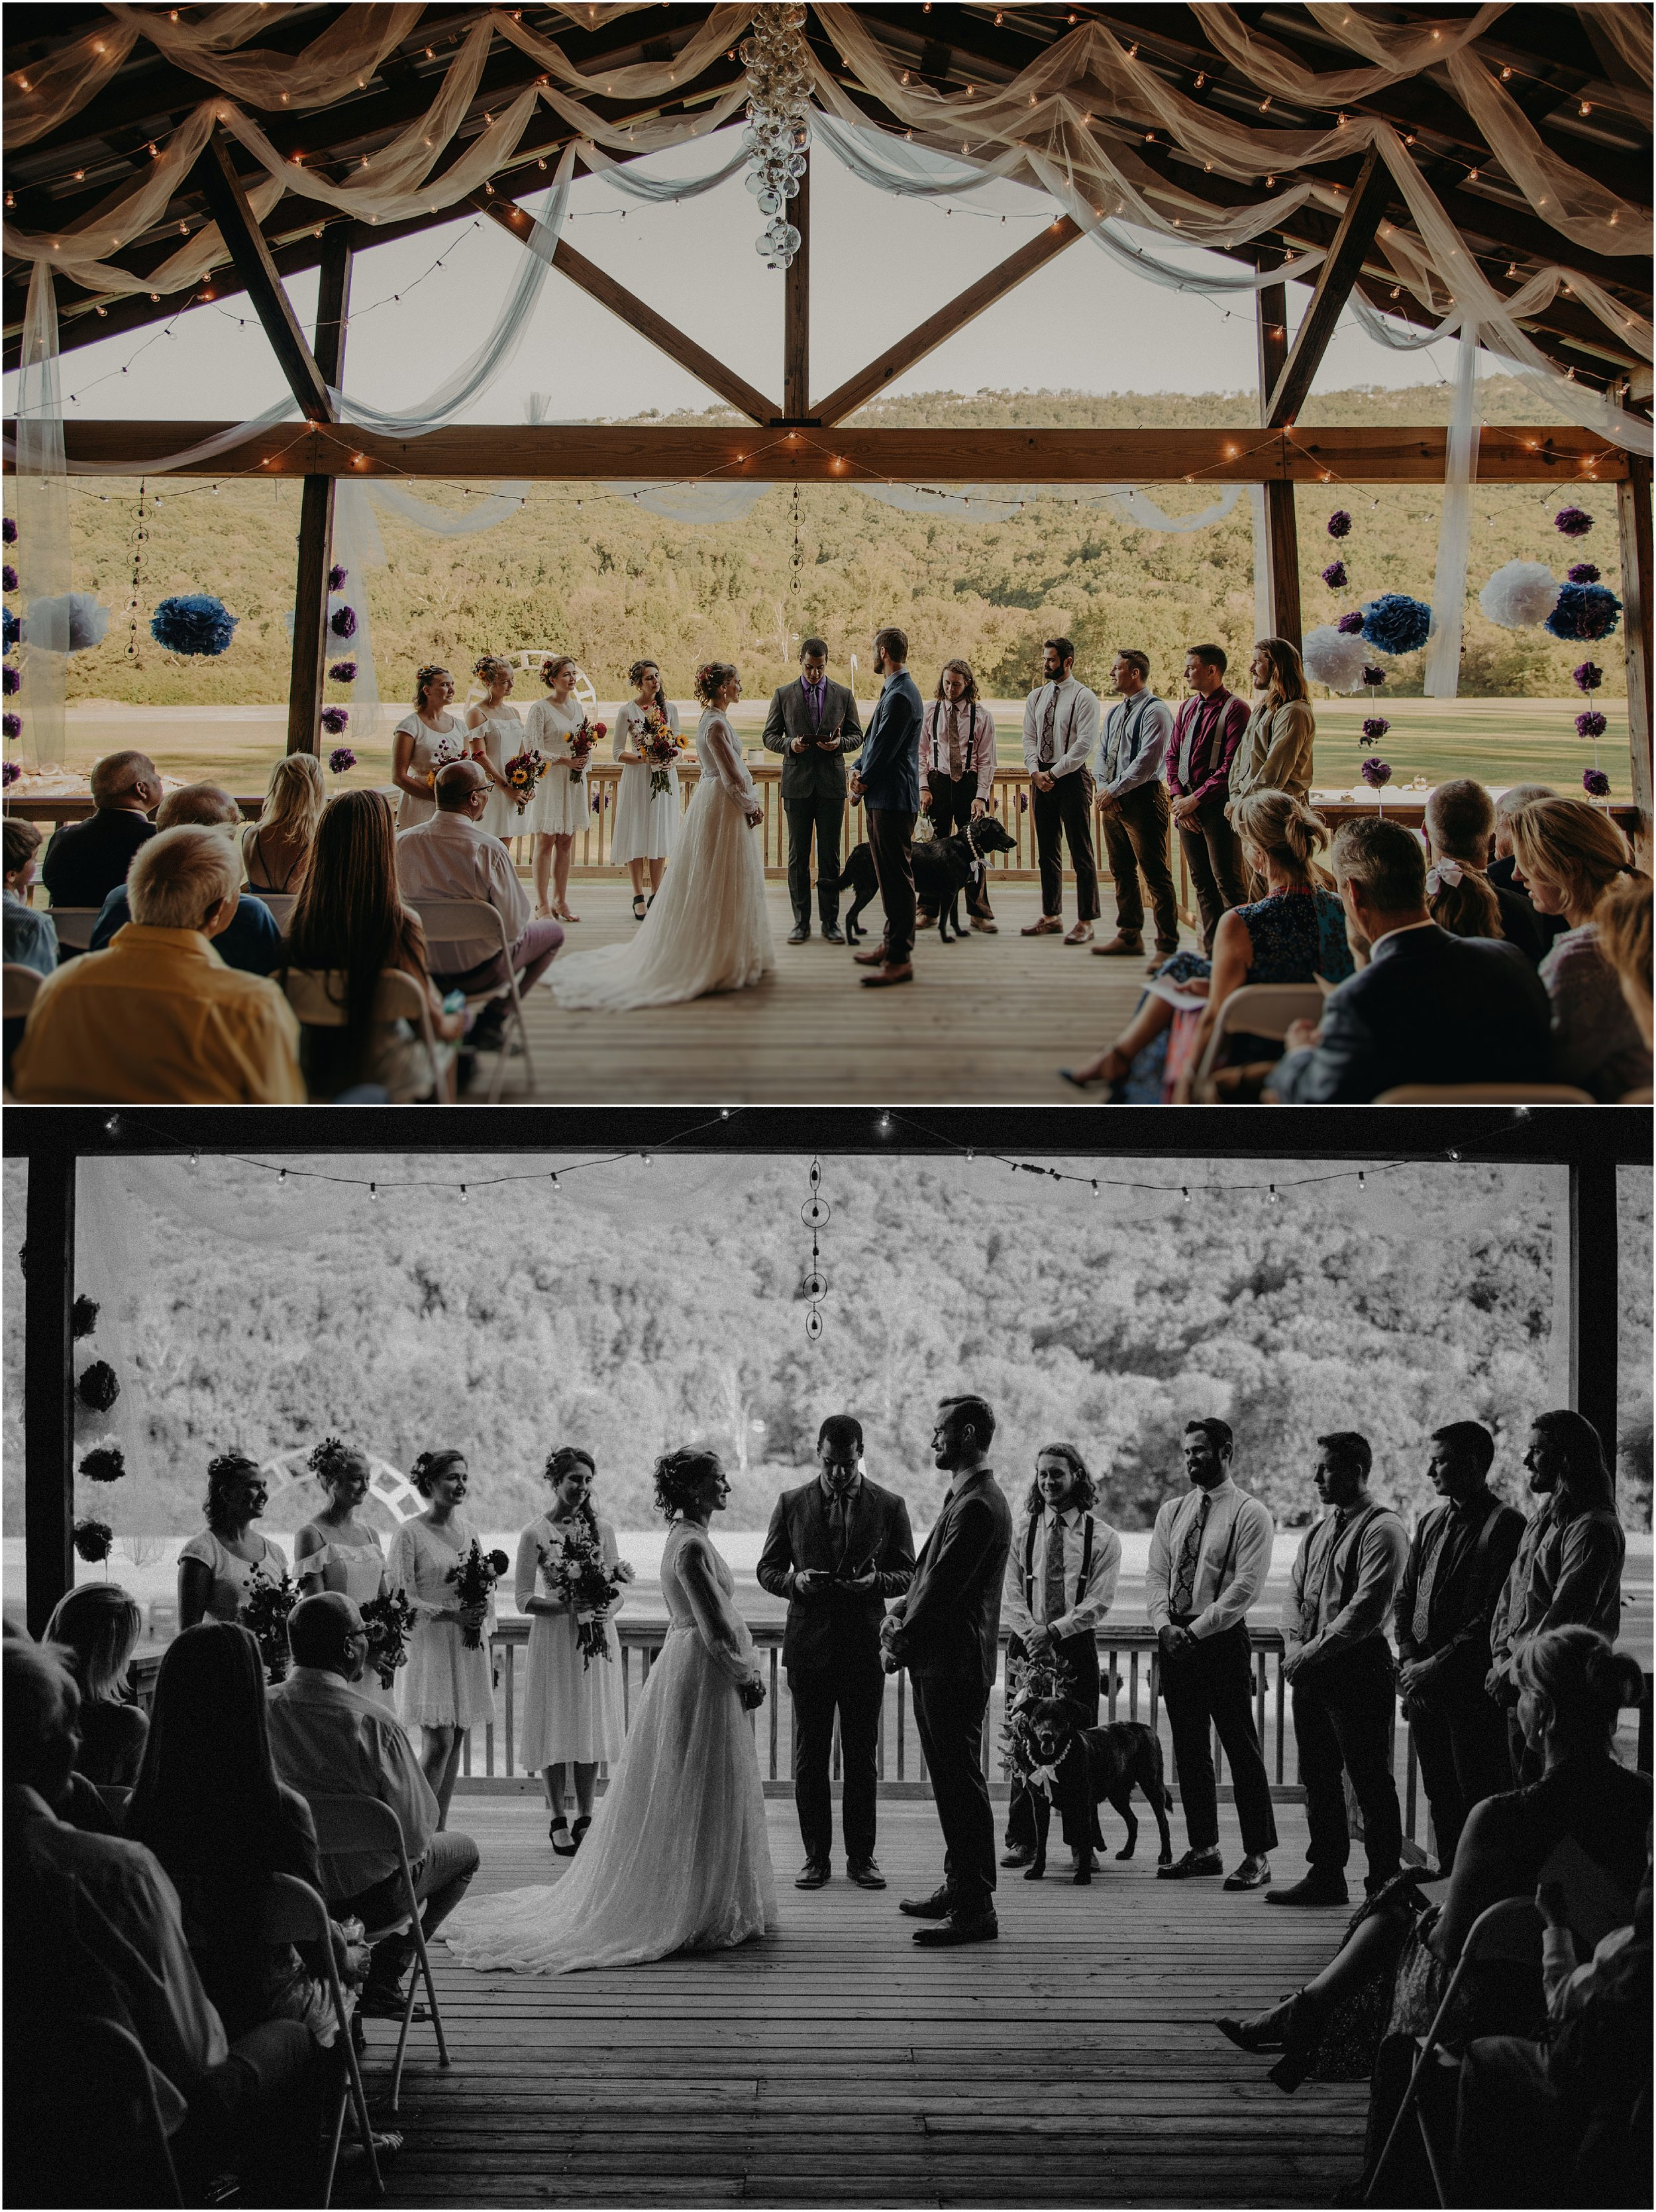 Outdoor fall wedding at the Lookout Mountain Hang-gliding School